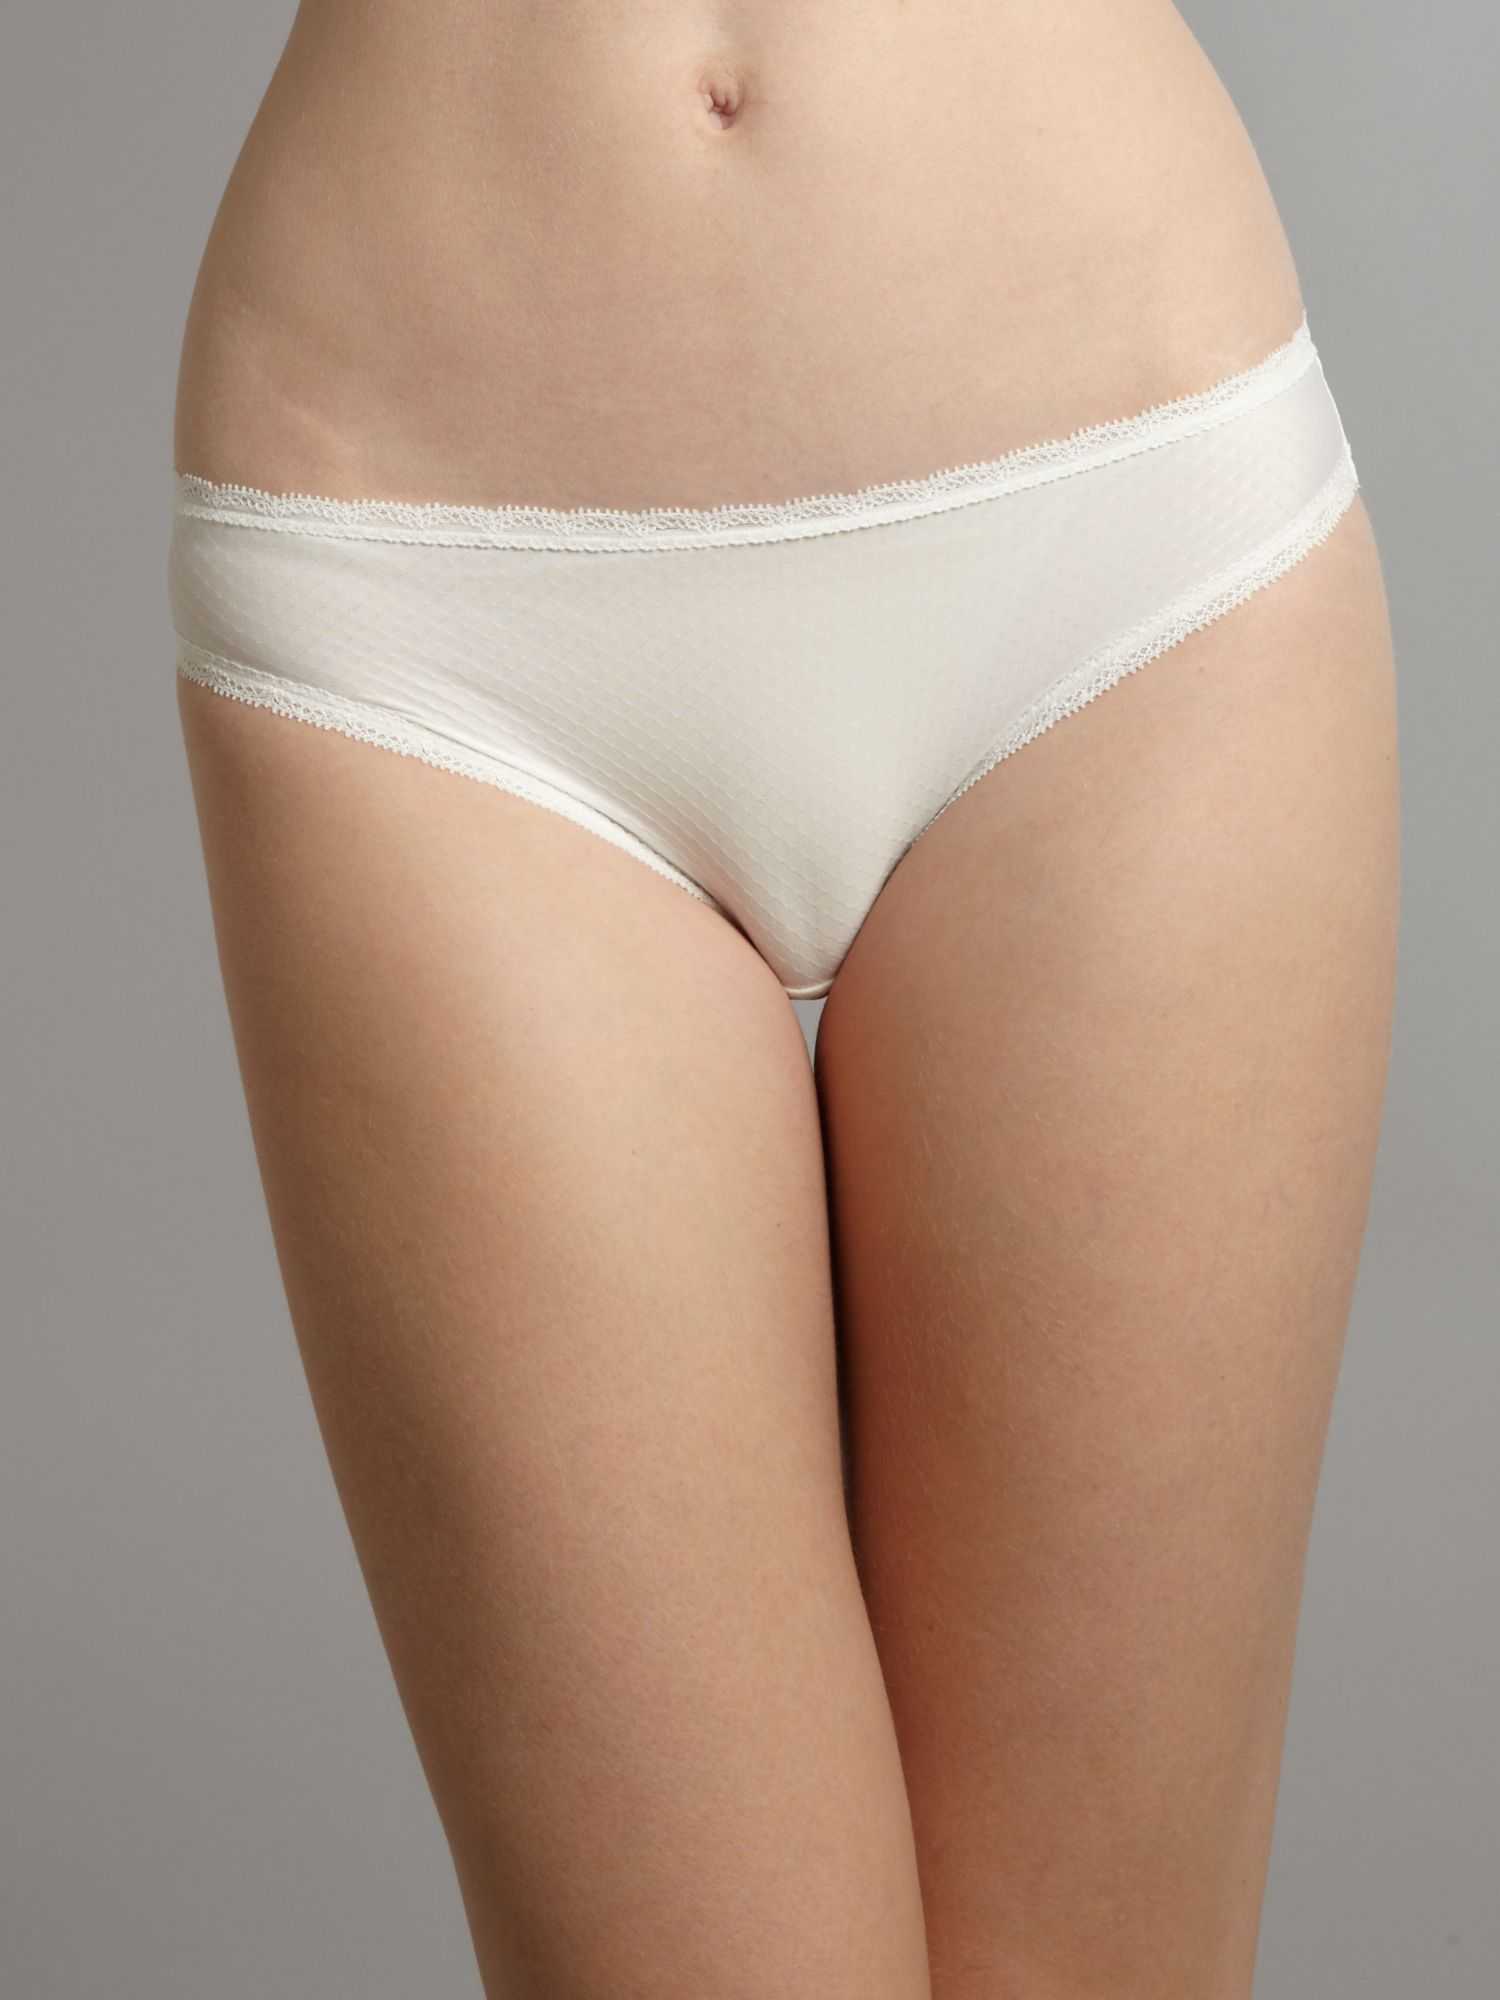 Nuage sweet brief